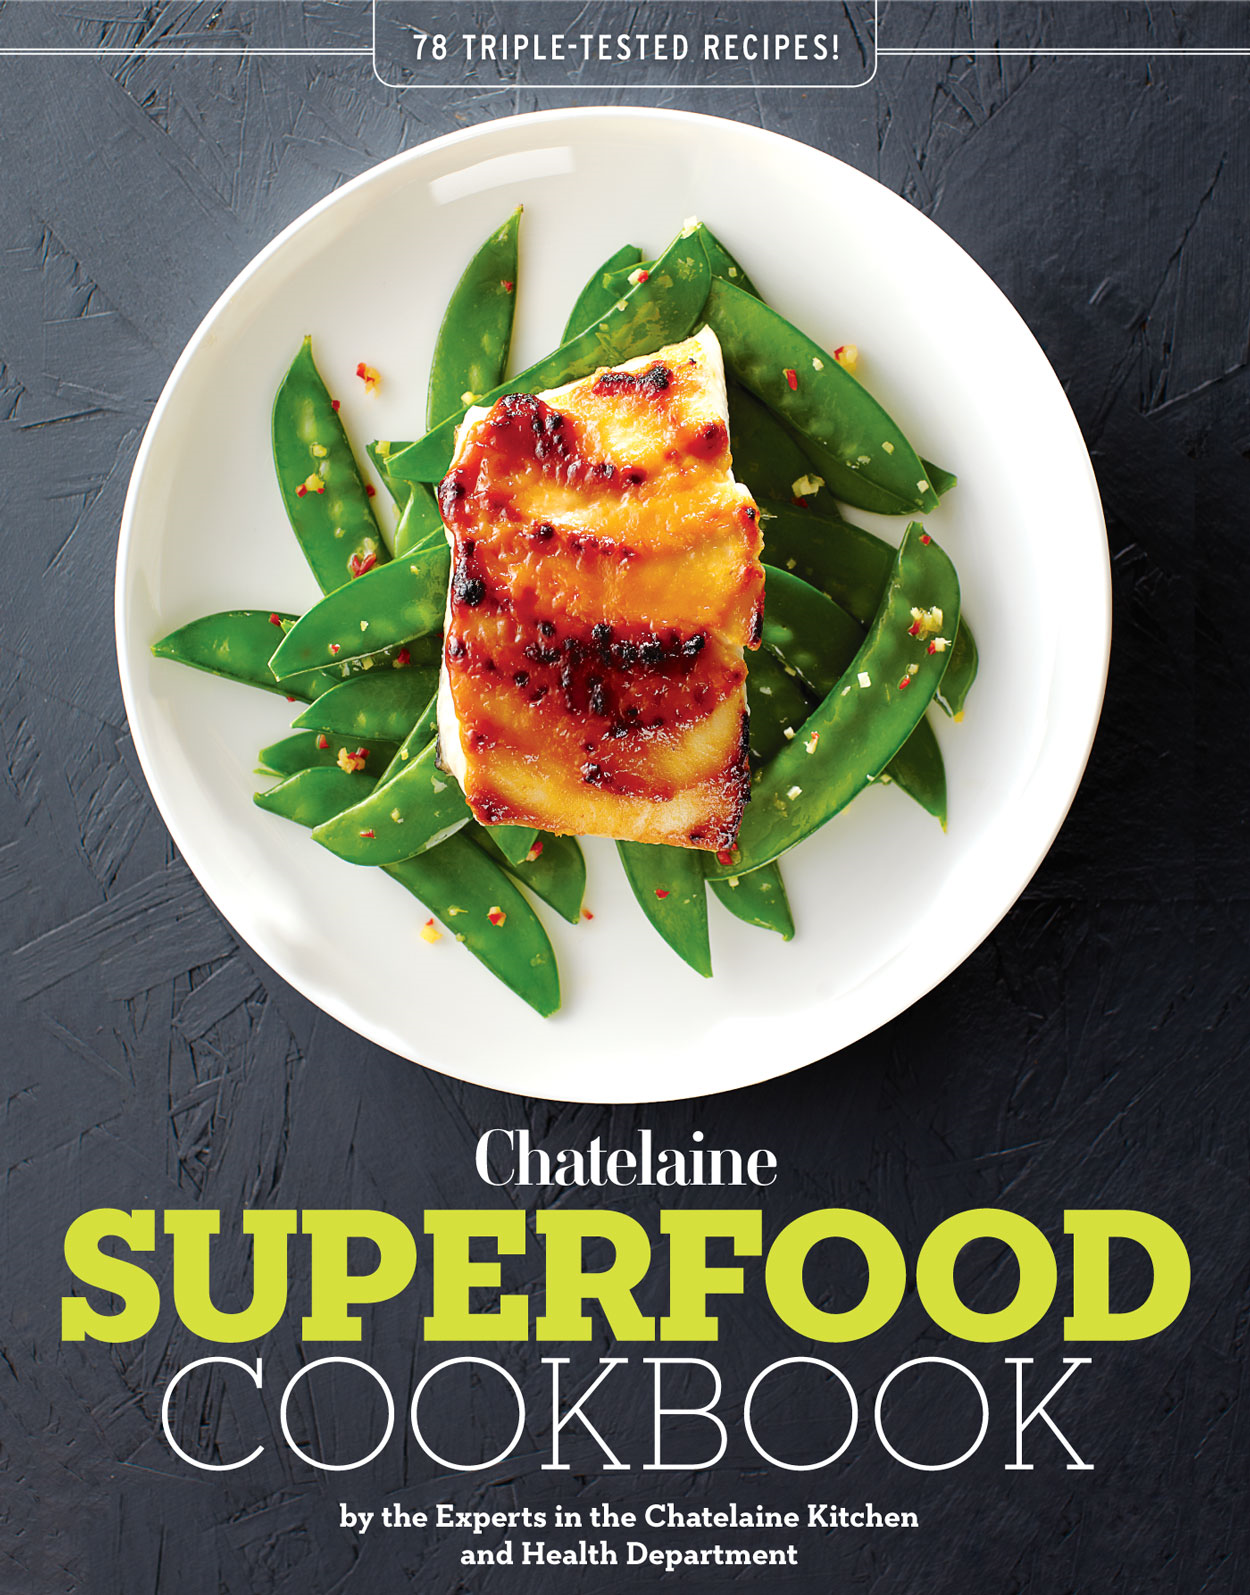 Chatelaines Superfood Cookbook